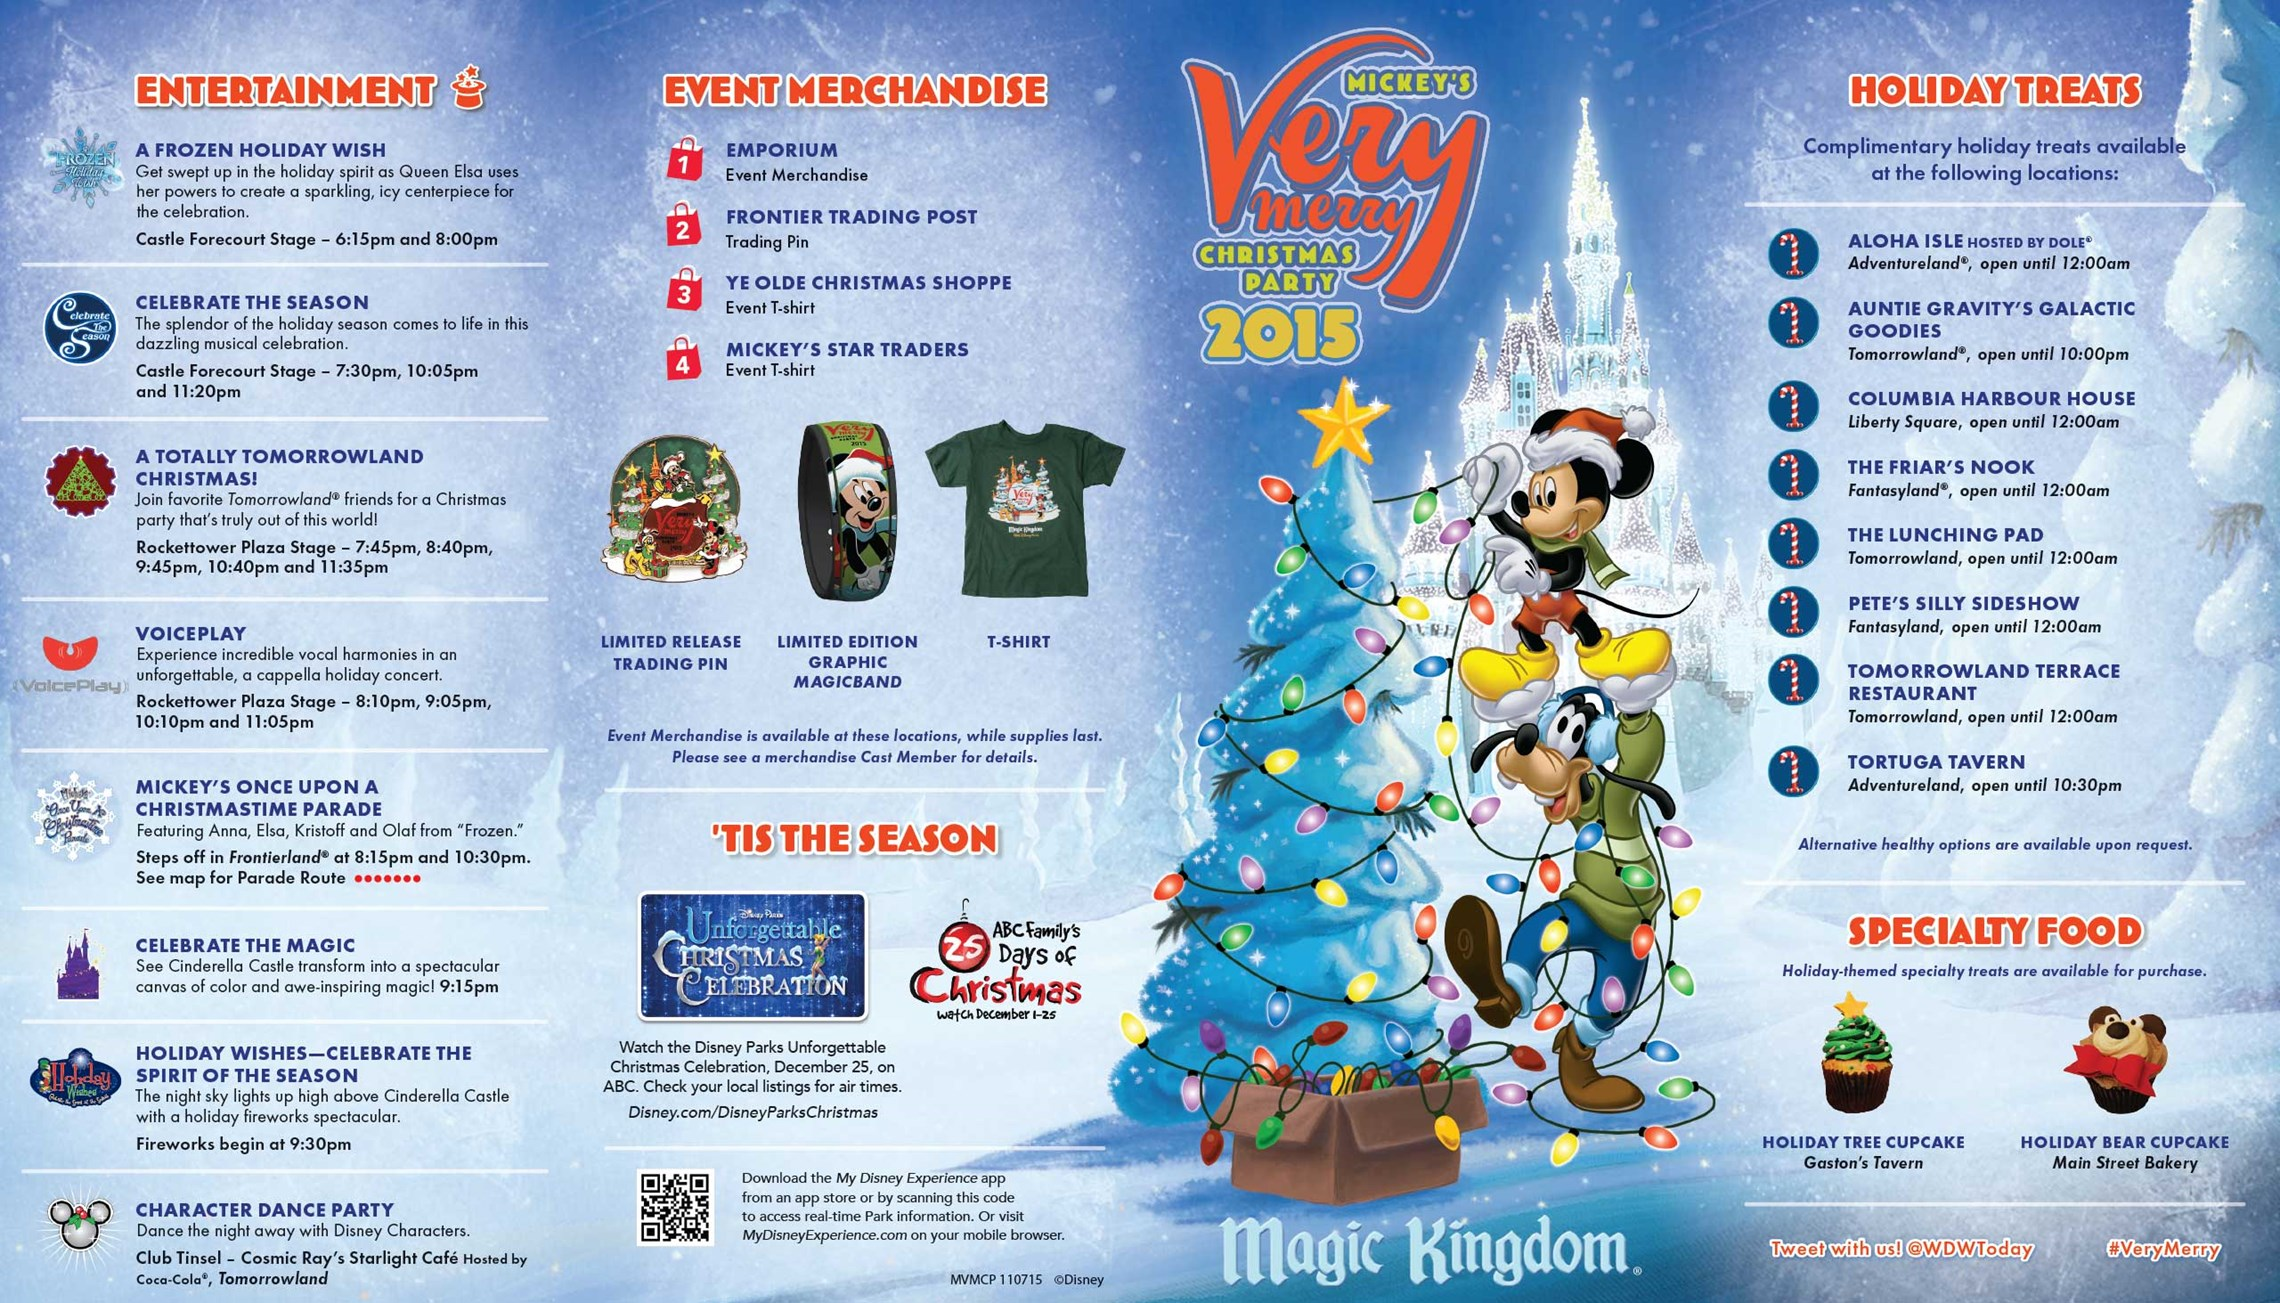 Nov 07 2015 Mickeys Very Merry Christmas Party 2015 guide map qkpUpgL7